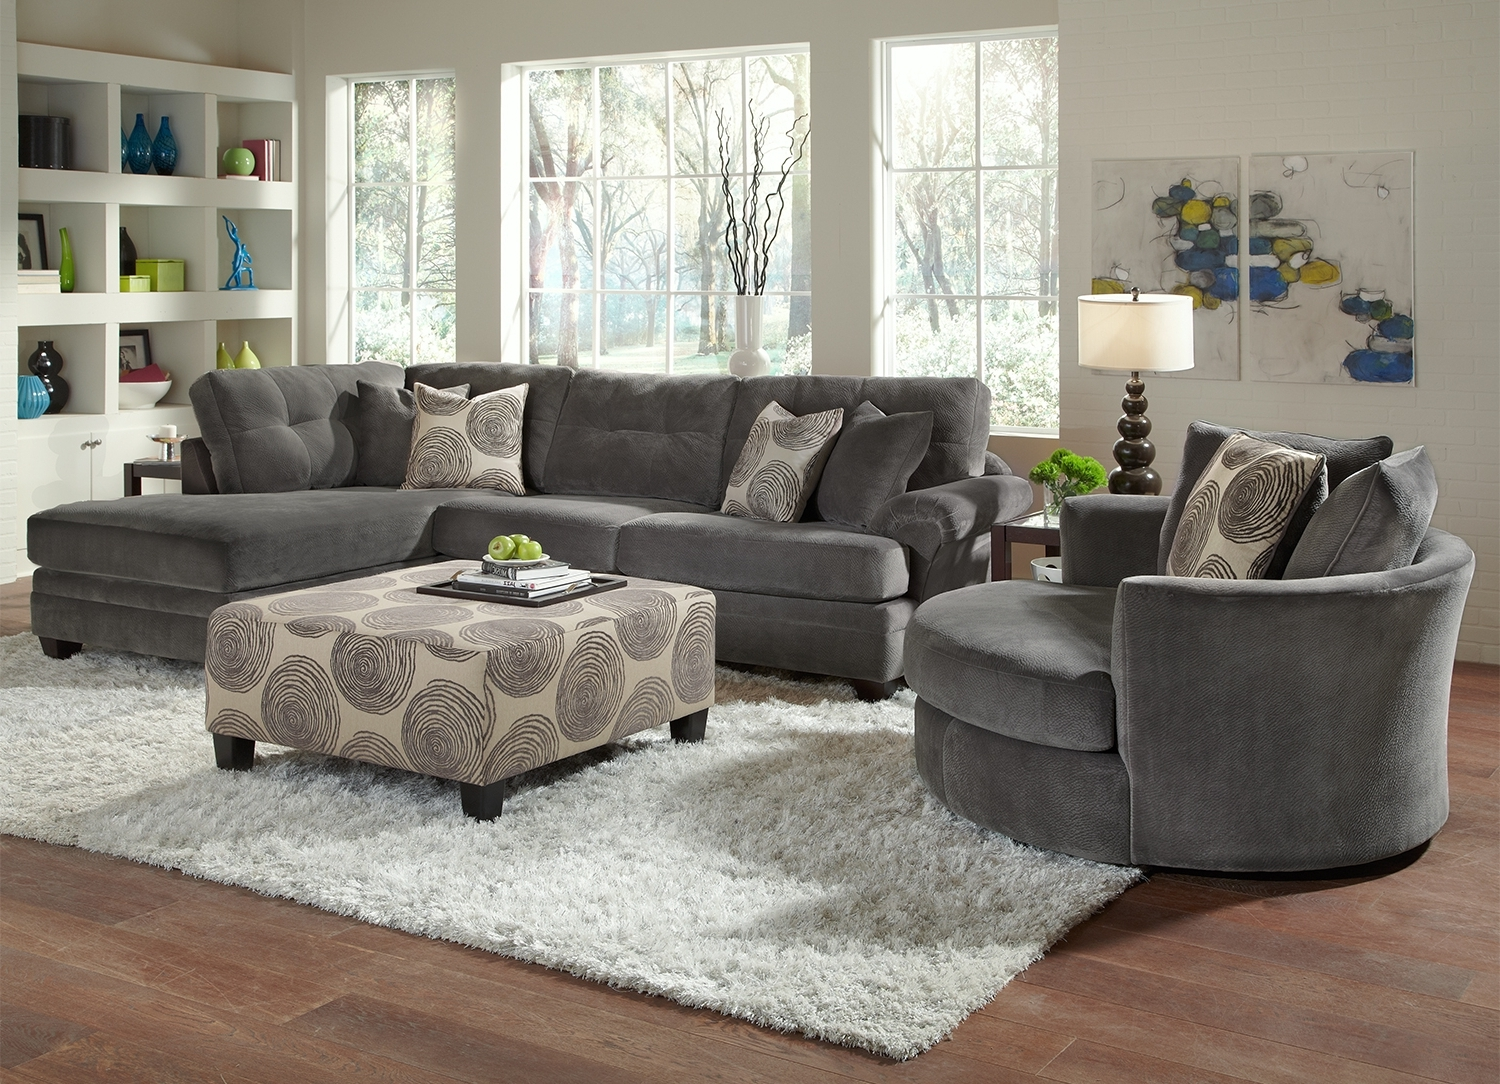 Tips to buy swivel chairs for living room for Really cheap living room furniture